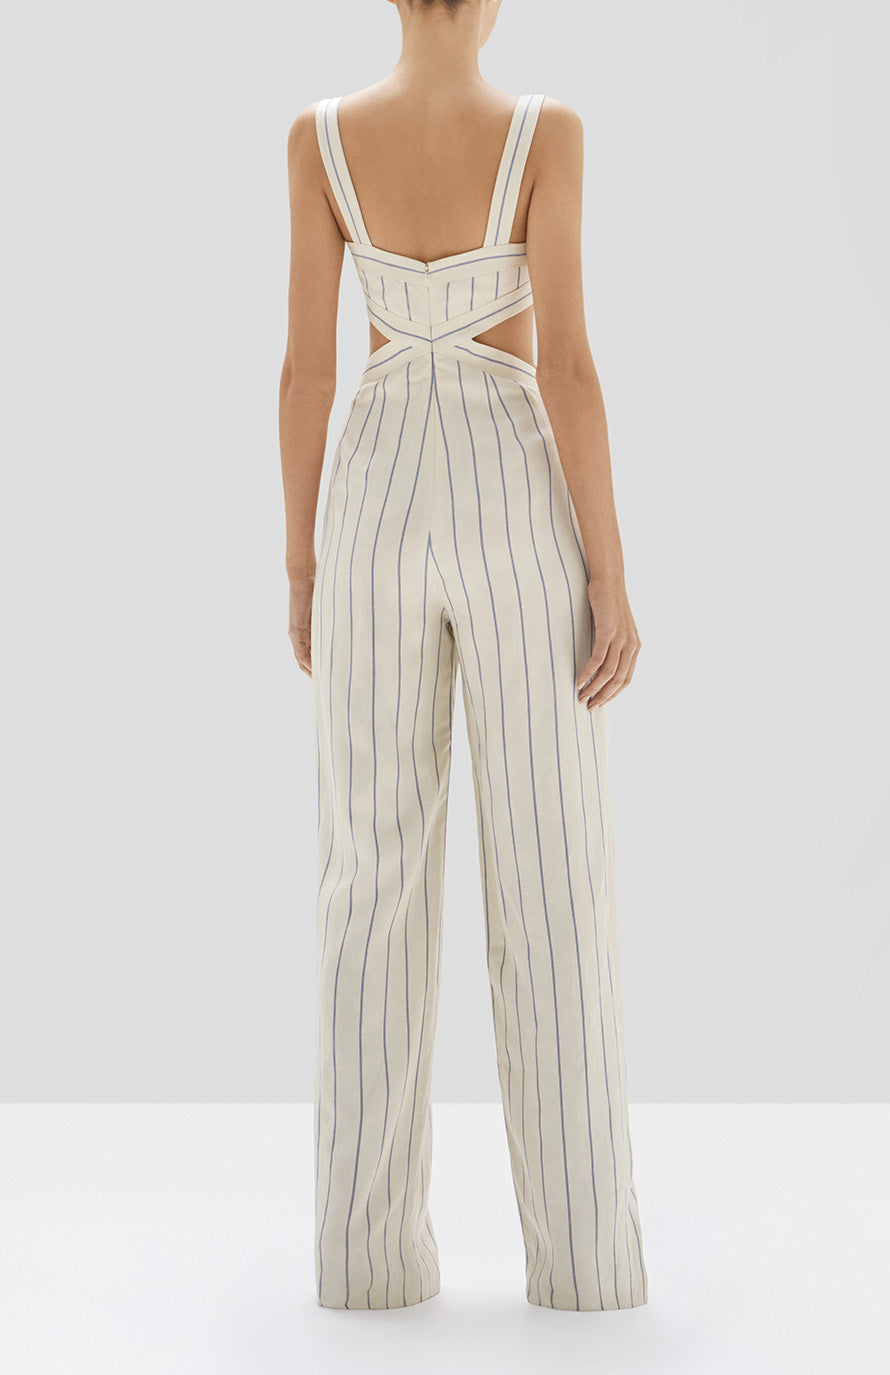 Alexis Lipton Jumpsuit in Blue Stripes from Pre Spring 2020 Collection - Rear View